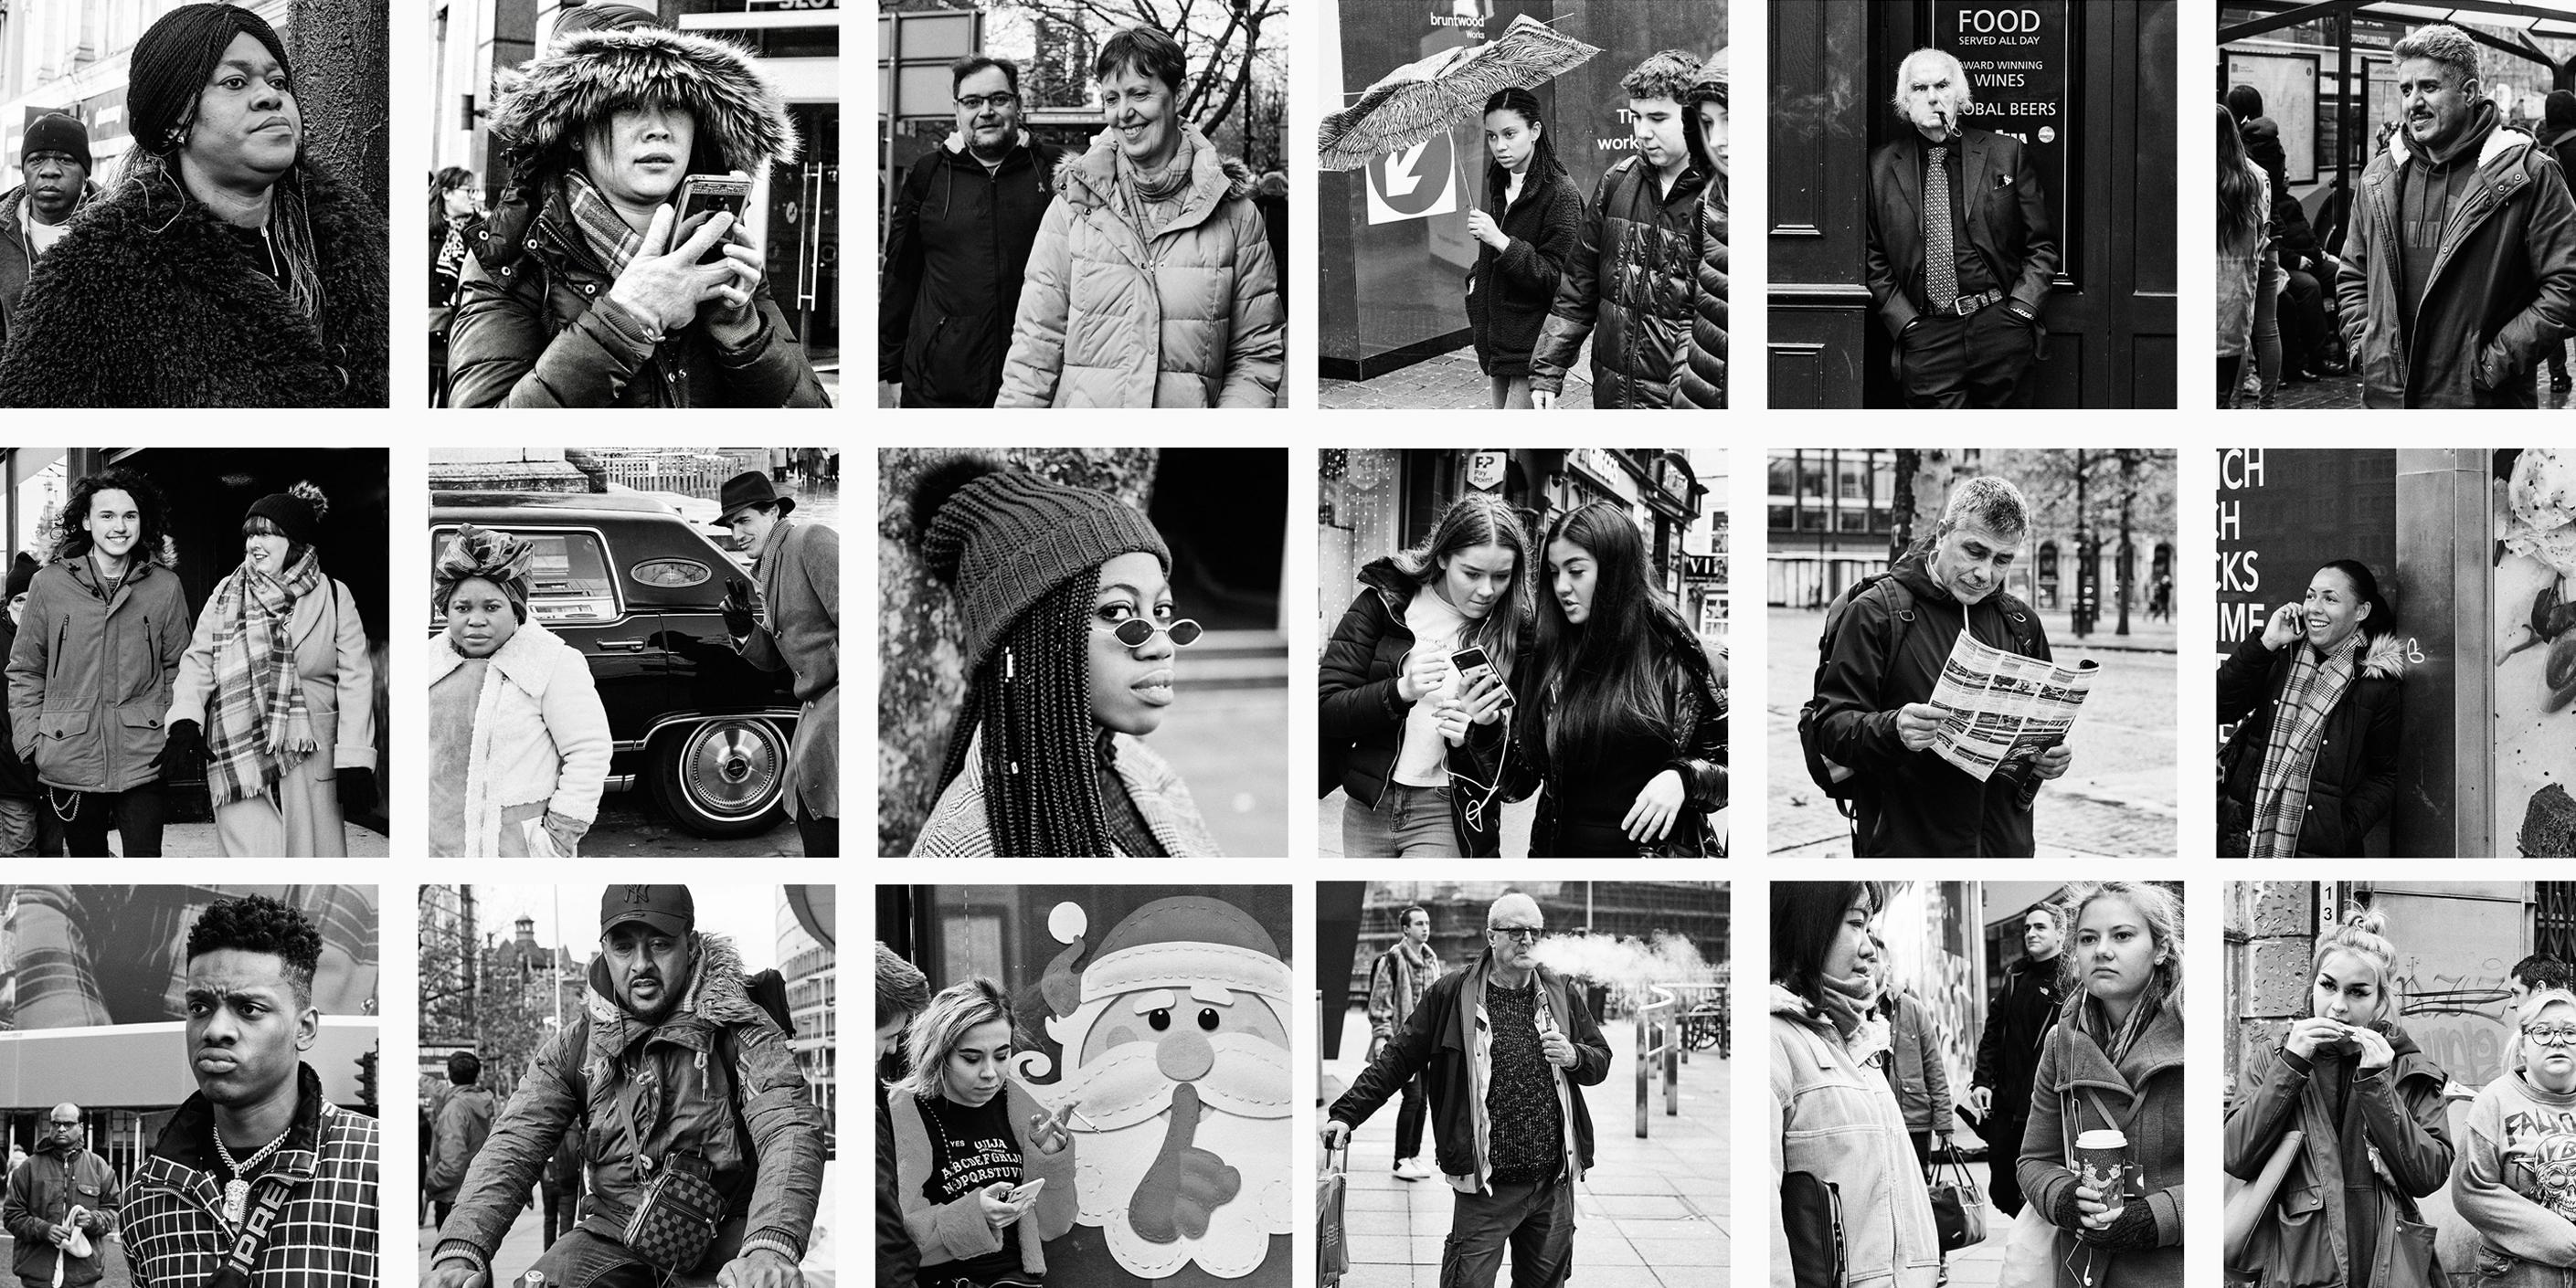 Street Photography Workshop in Manchester - The Northern Quarter